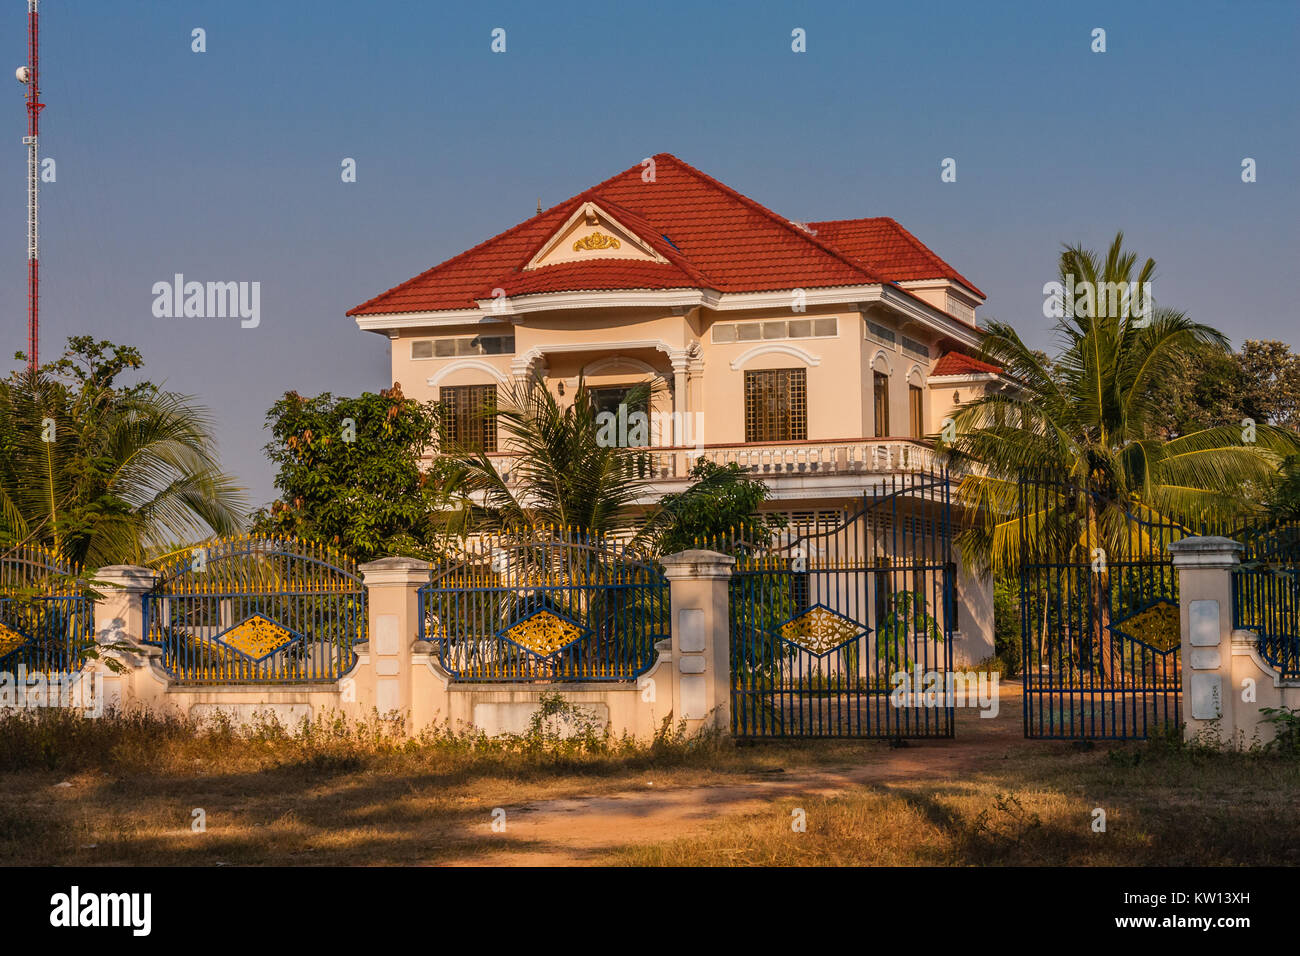 A wealthy house in a Cambodian village - Stock Image